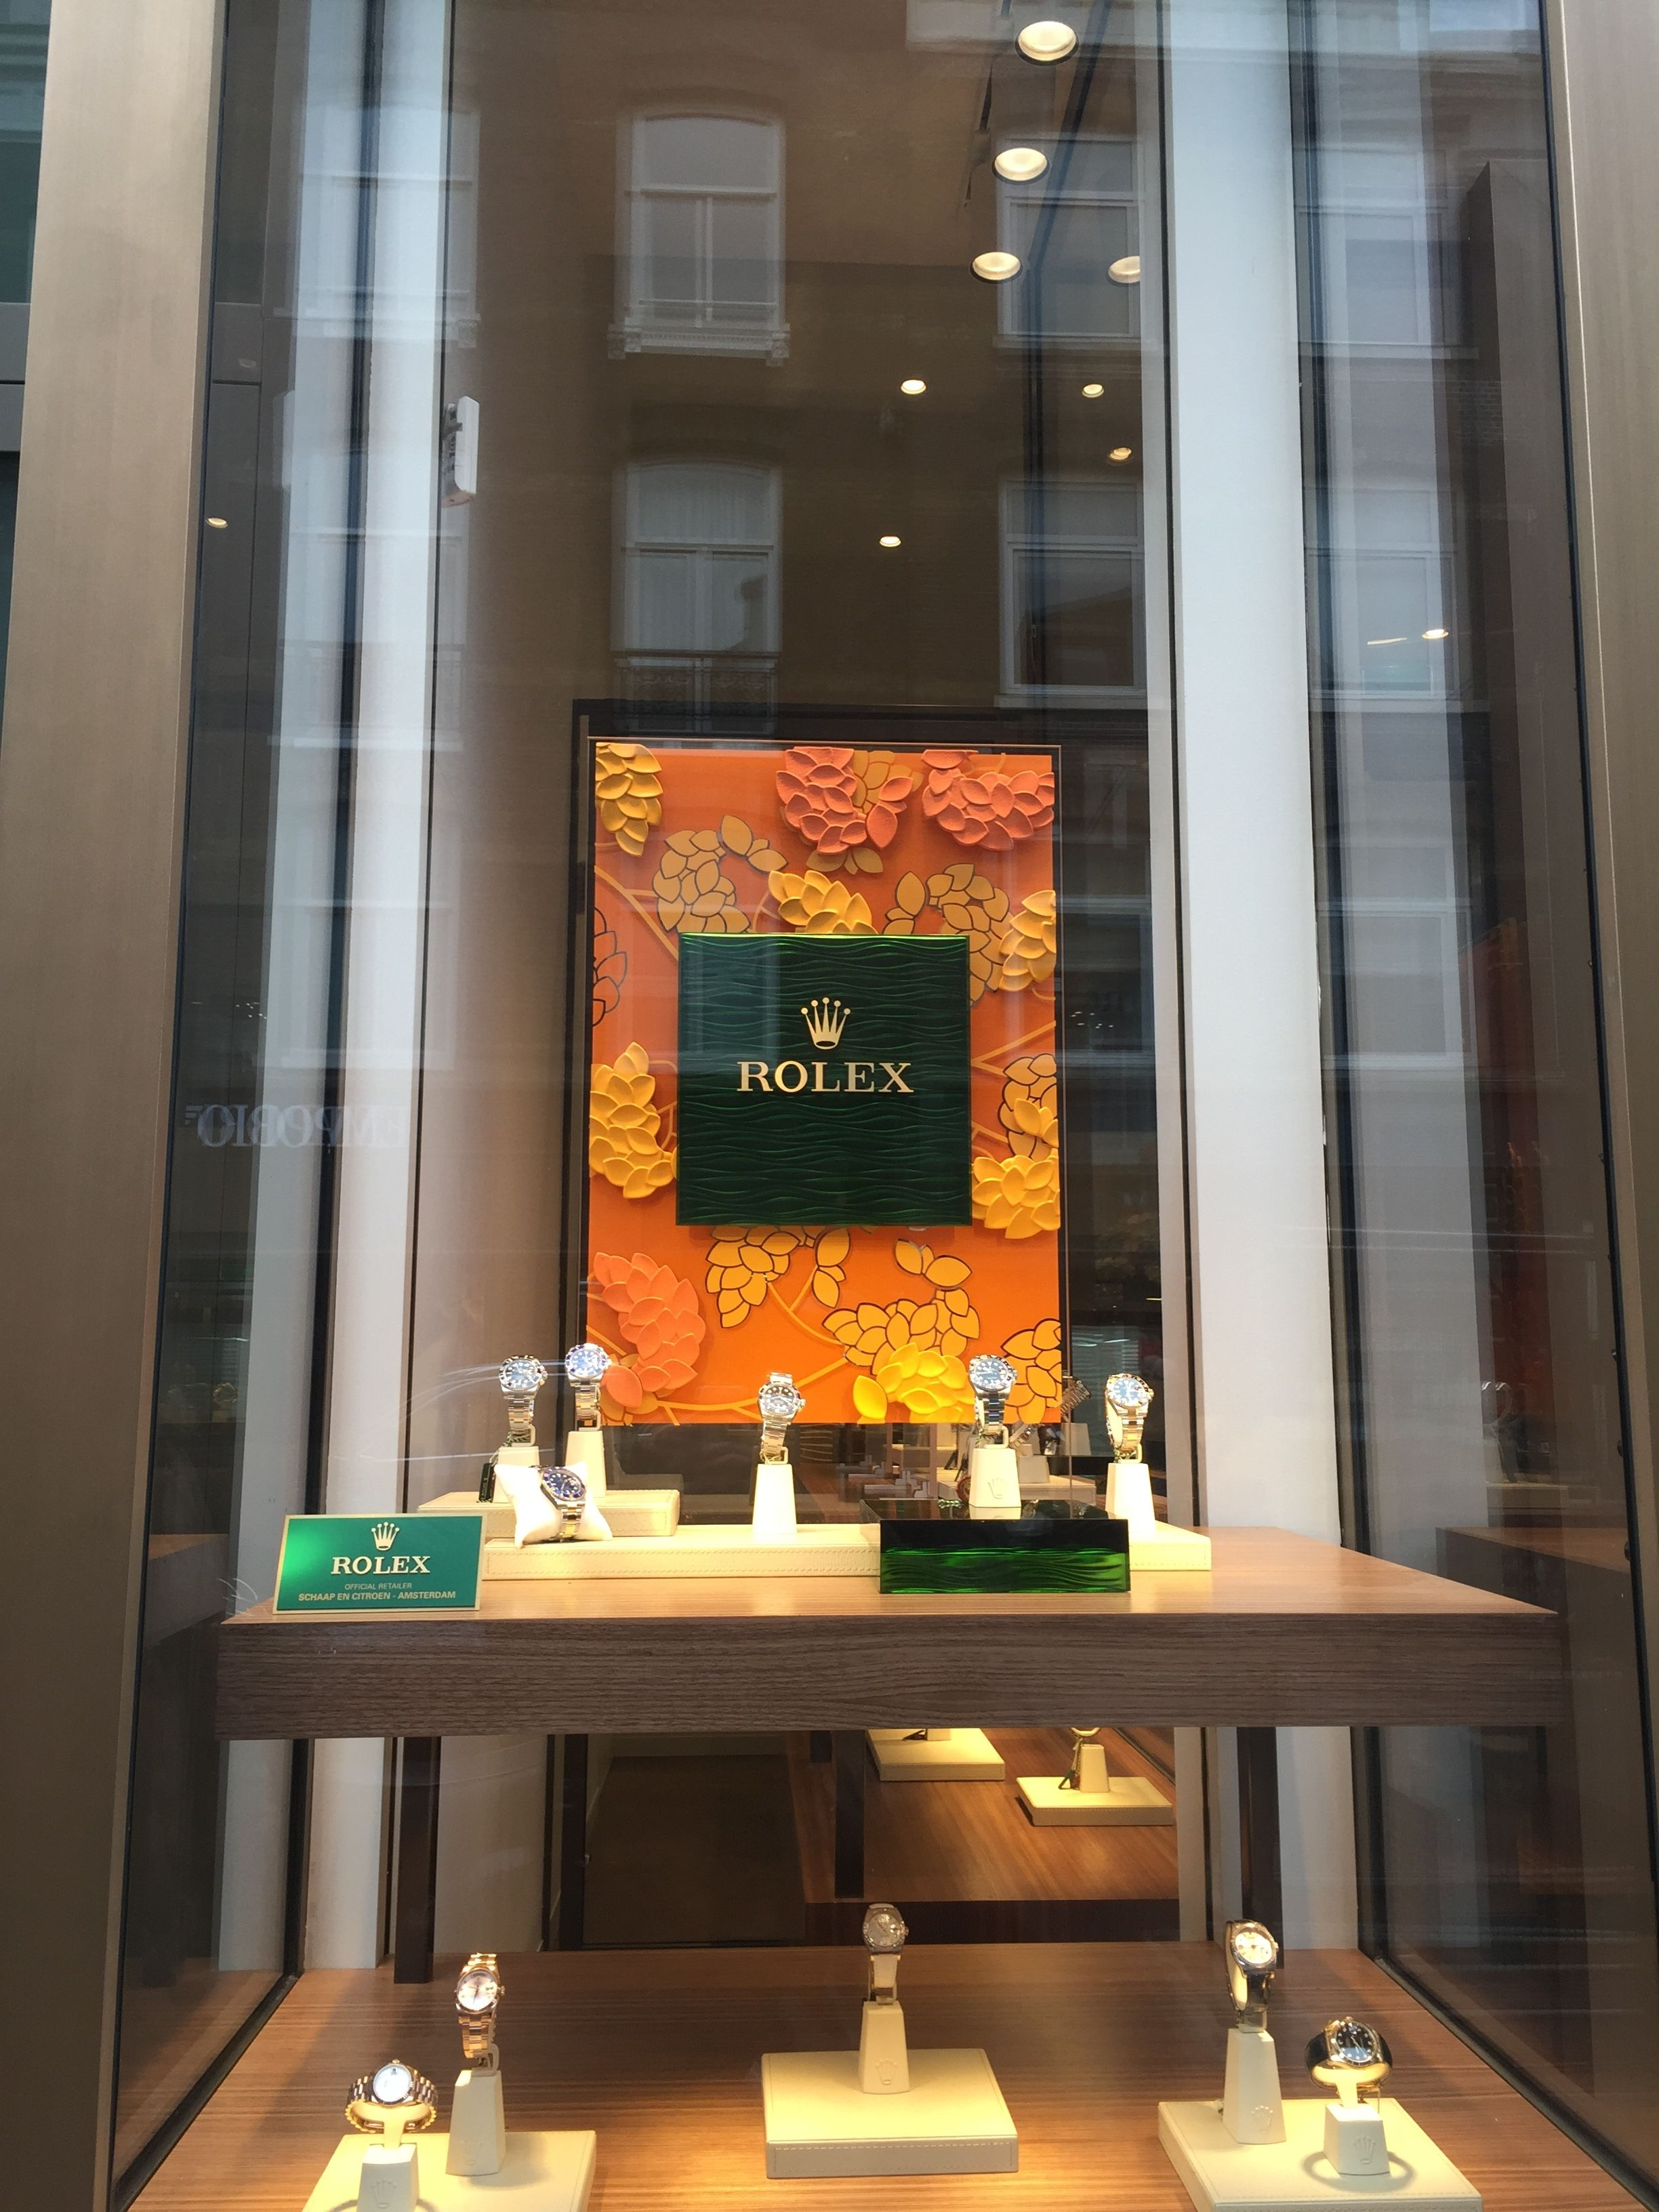 cbf282d544c This was taken in front of a Rolex store. The photo is displaying different  styles of Rolexes. I found the green square Rolex logo against an orange ...